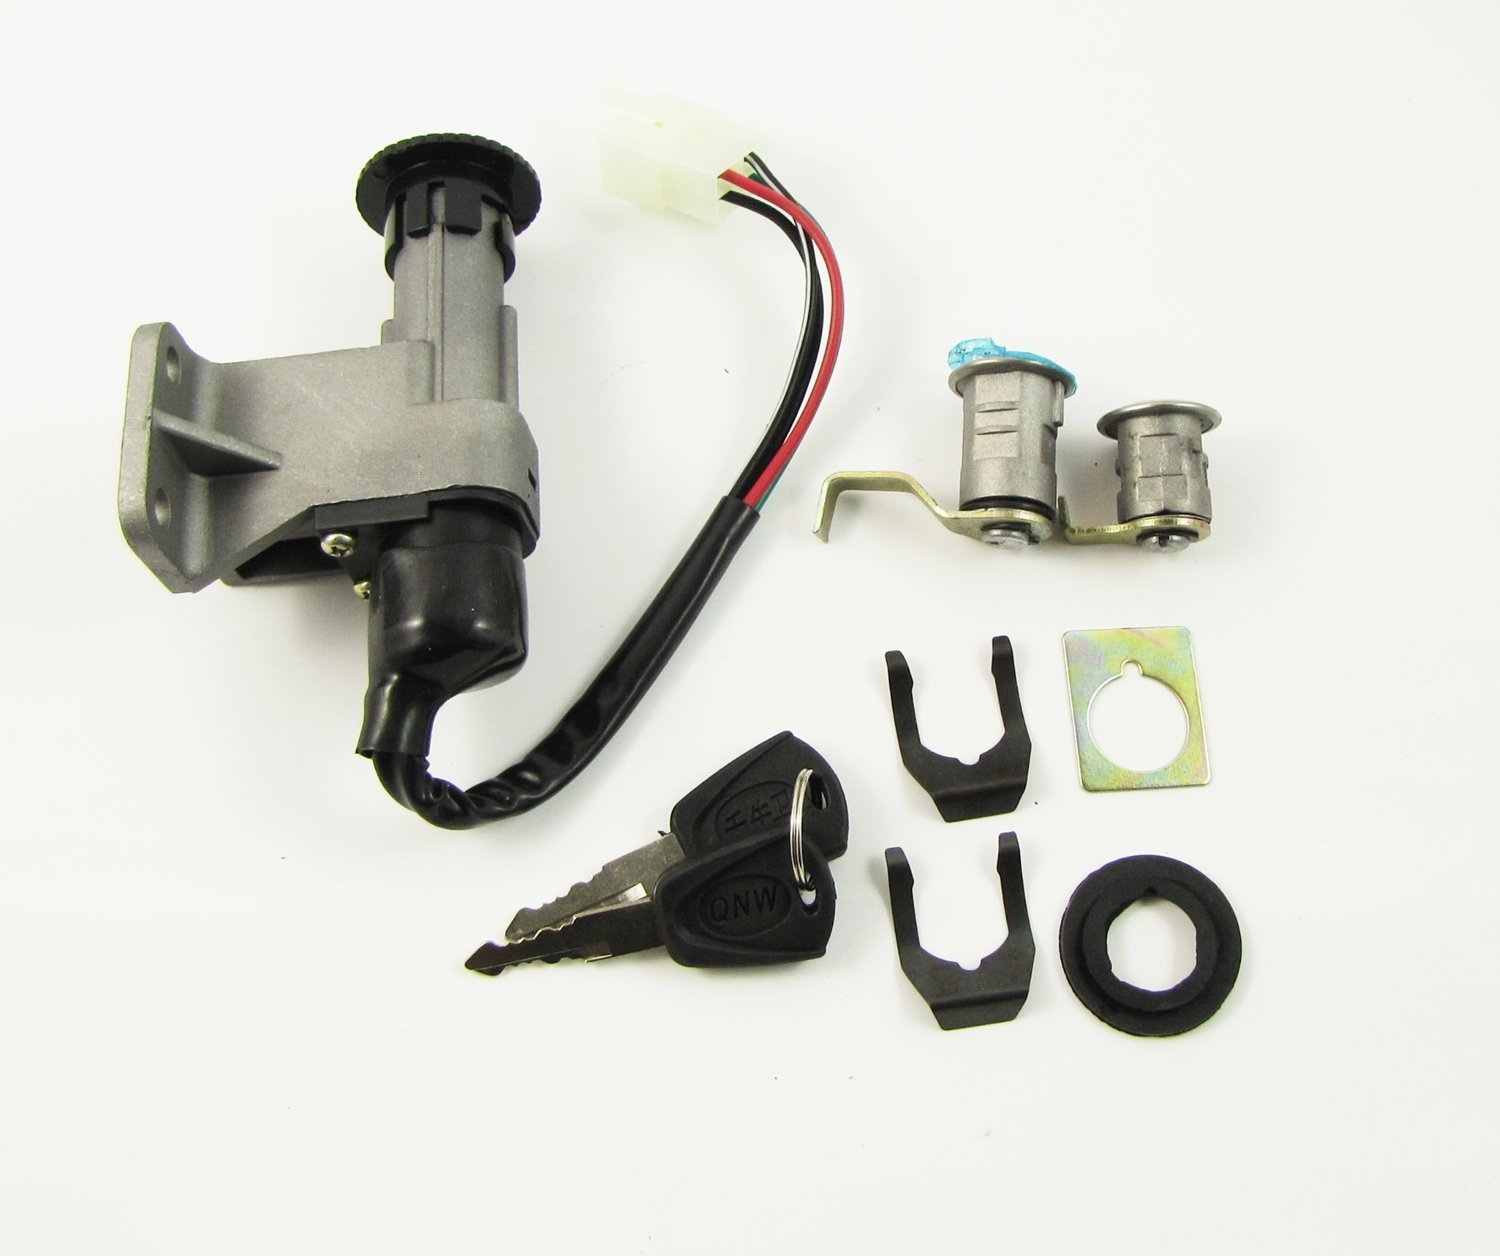 Motorcycle E-bike Scooter Ignition Switch Power Battery Leading Lock Set 2 Key hwydo